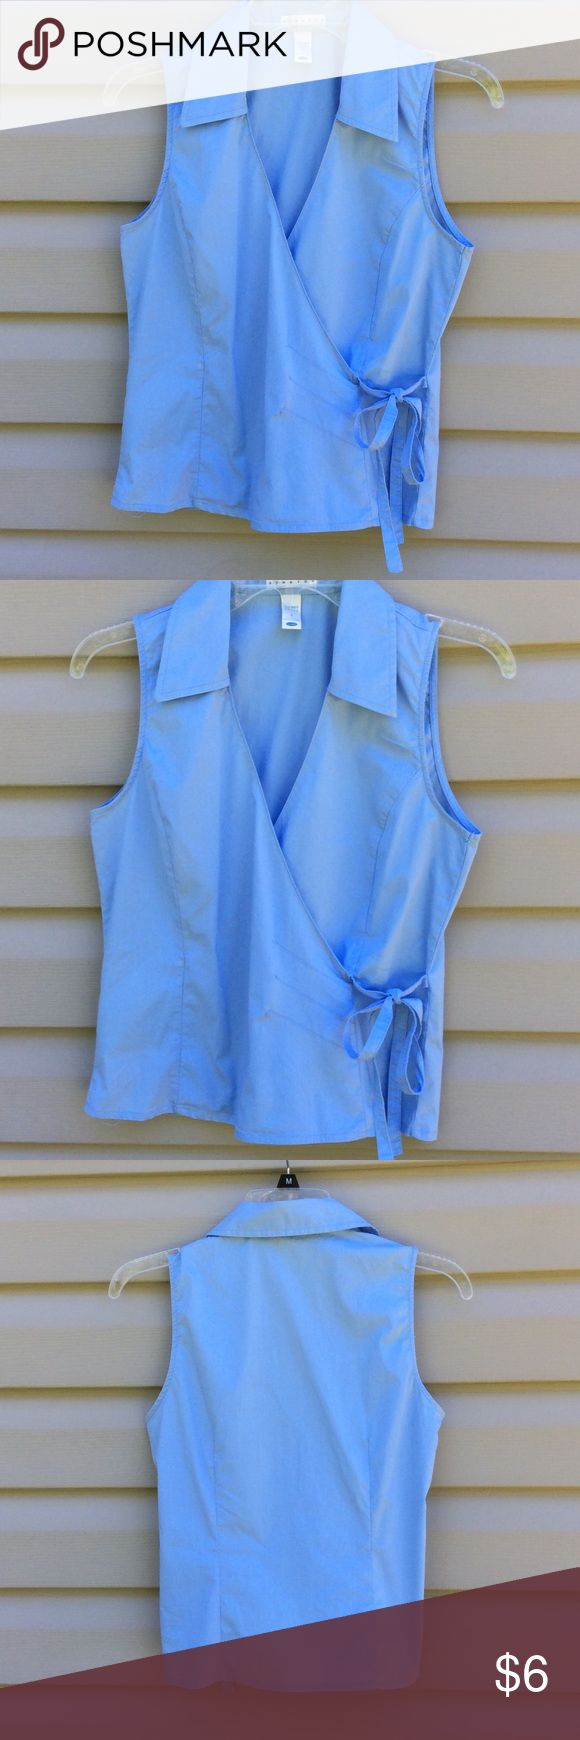 Ladies light blue shirt. Old Navy Pretty light blue shirt..small..excellent condition! Old Navy Tops Blouses